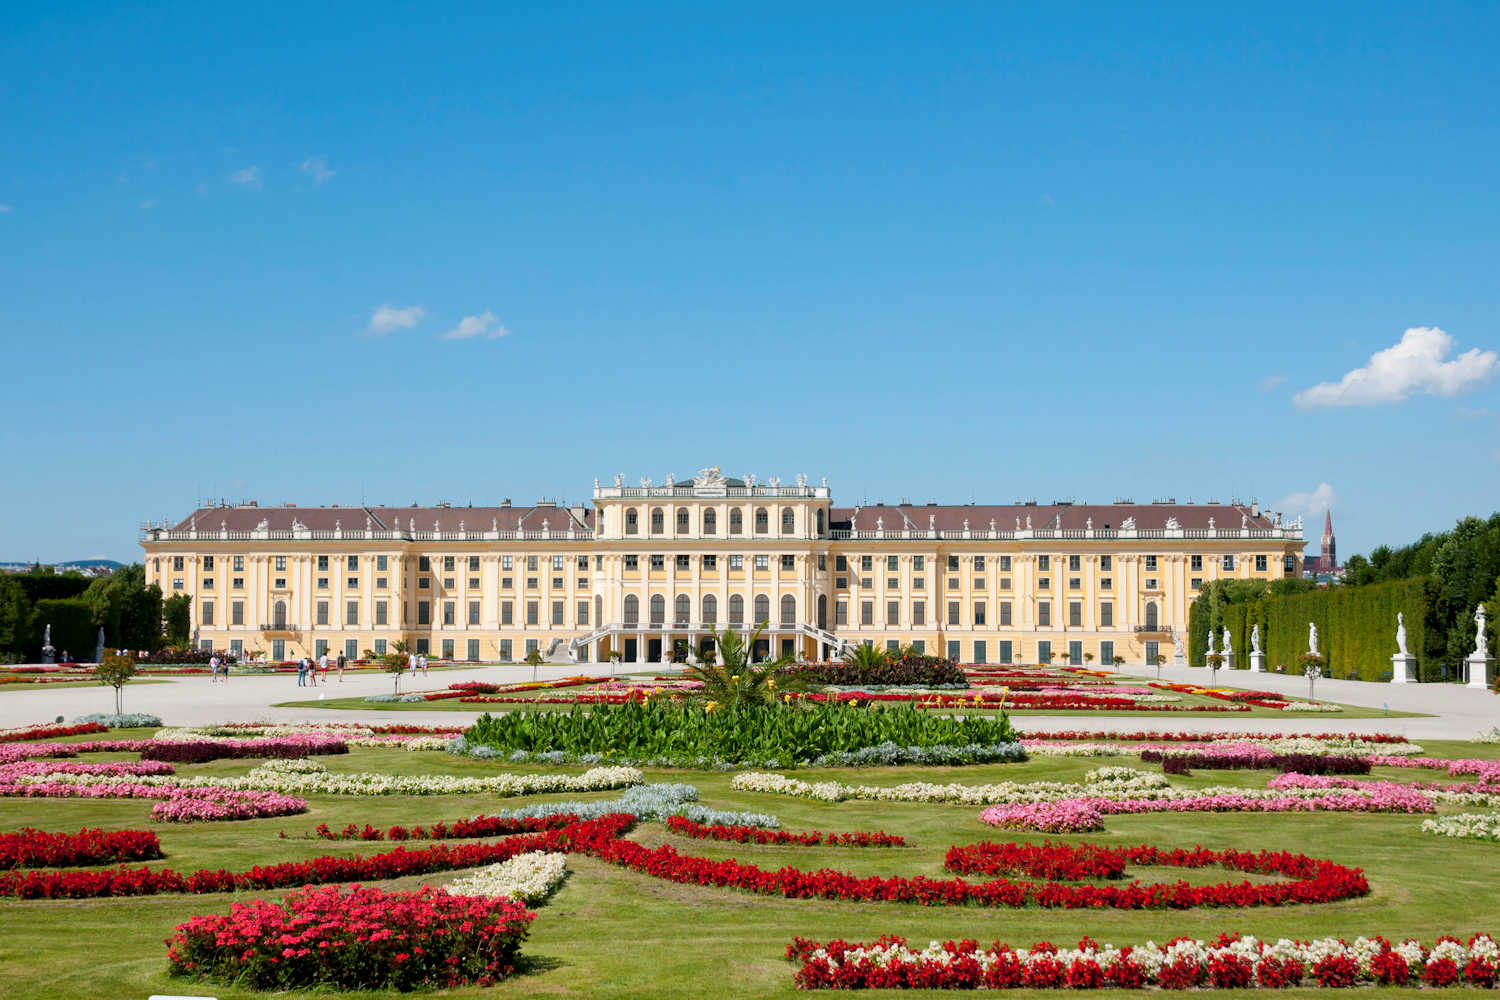 External view of Schonbrunn Palace